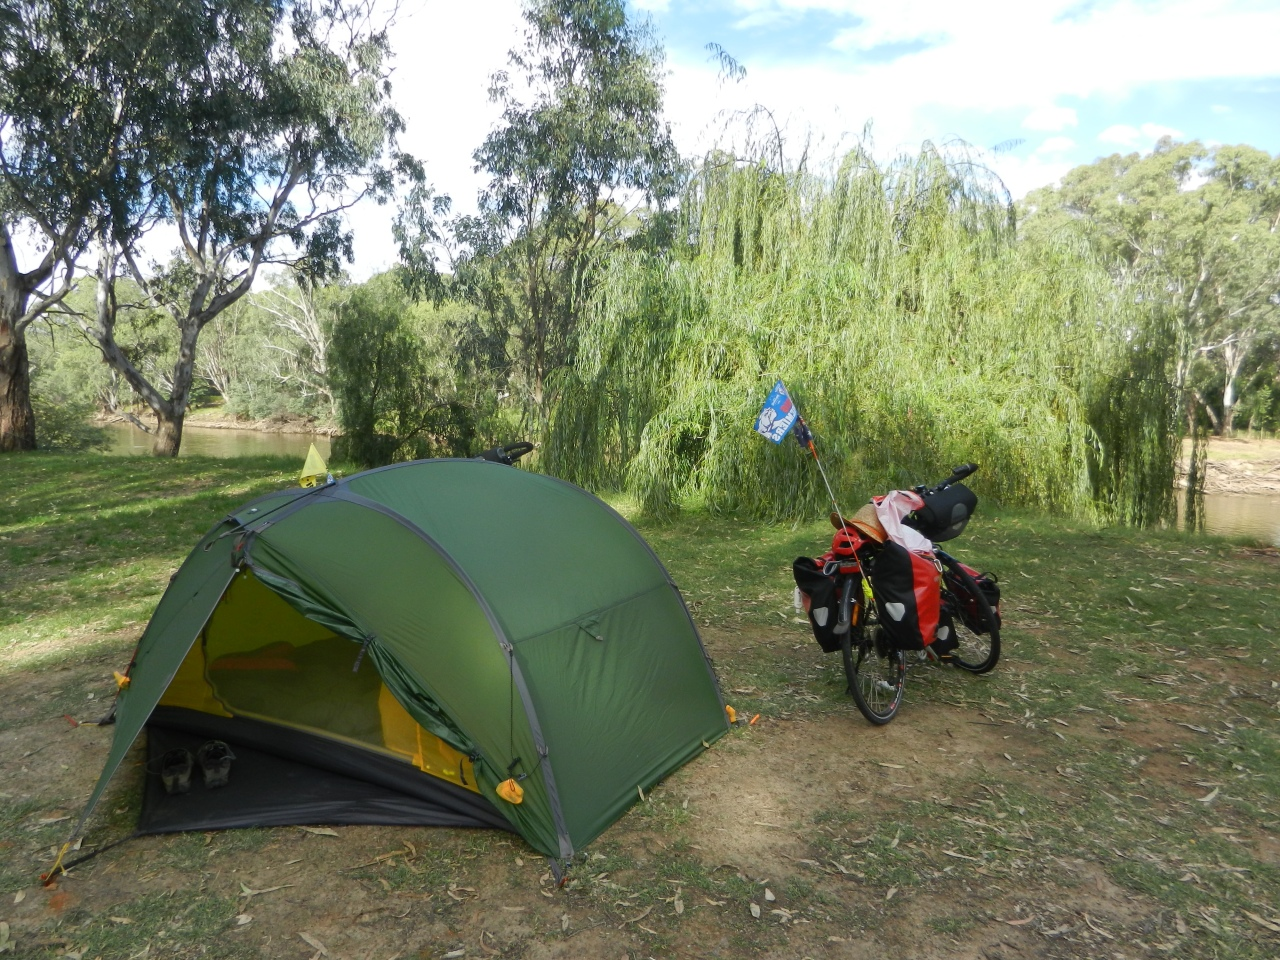 Looking Forward, Looking Back: 8 months cycling in a tent.